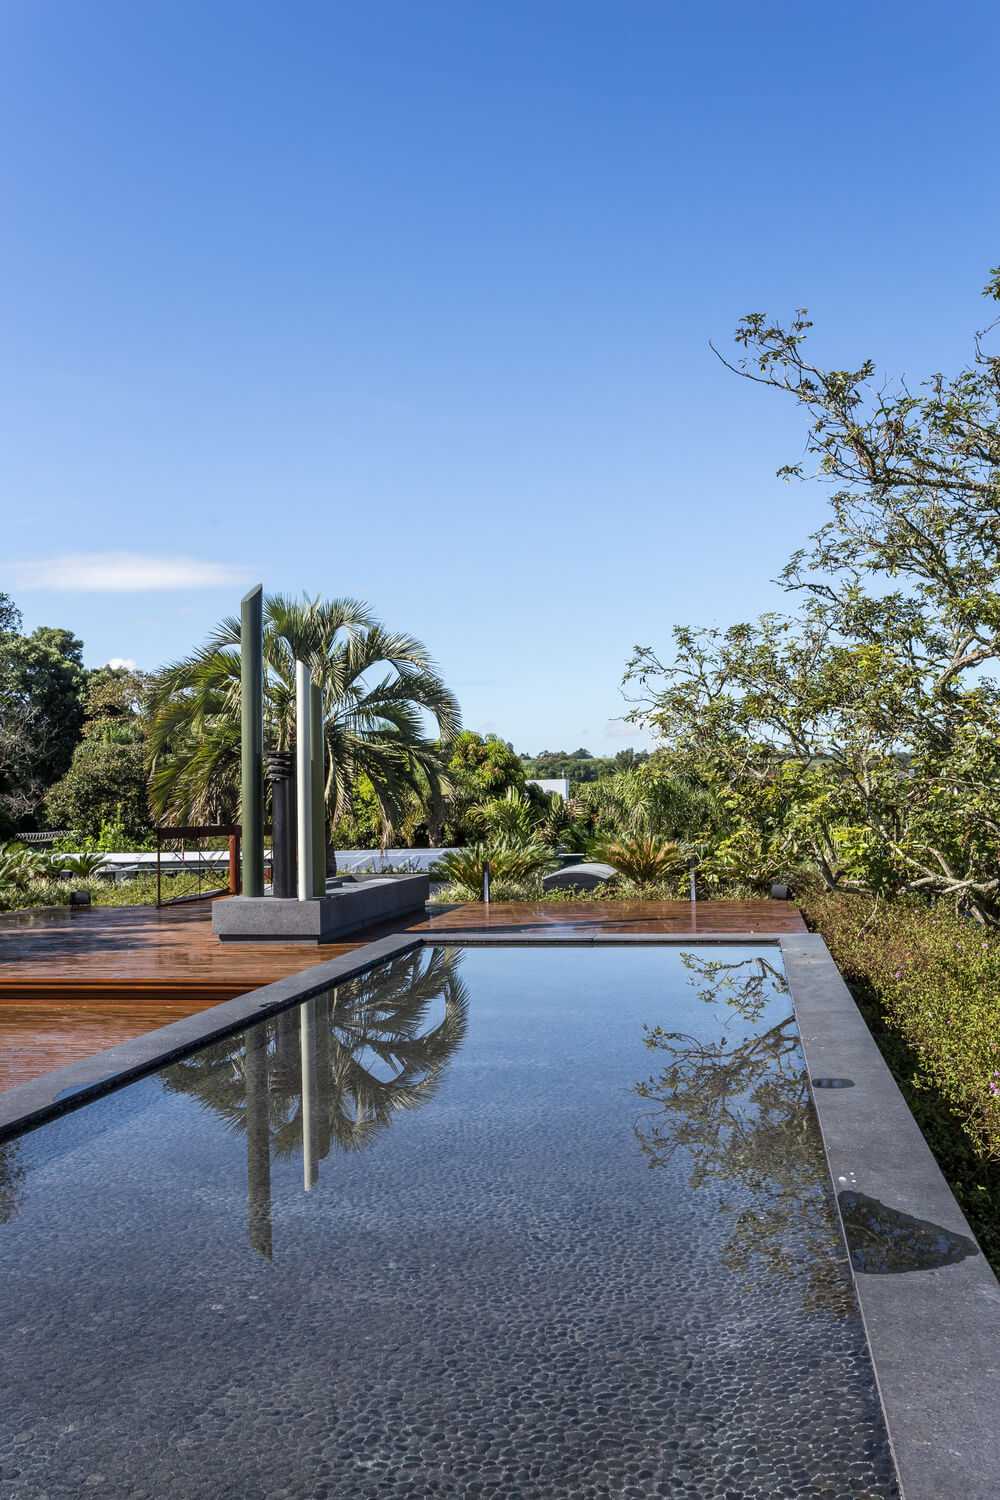 A few steps from the concrete structure is the small rooftop pool with a dark tone to it.